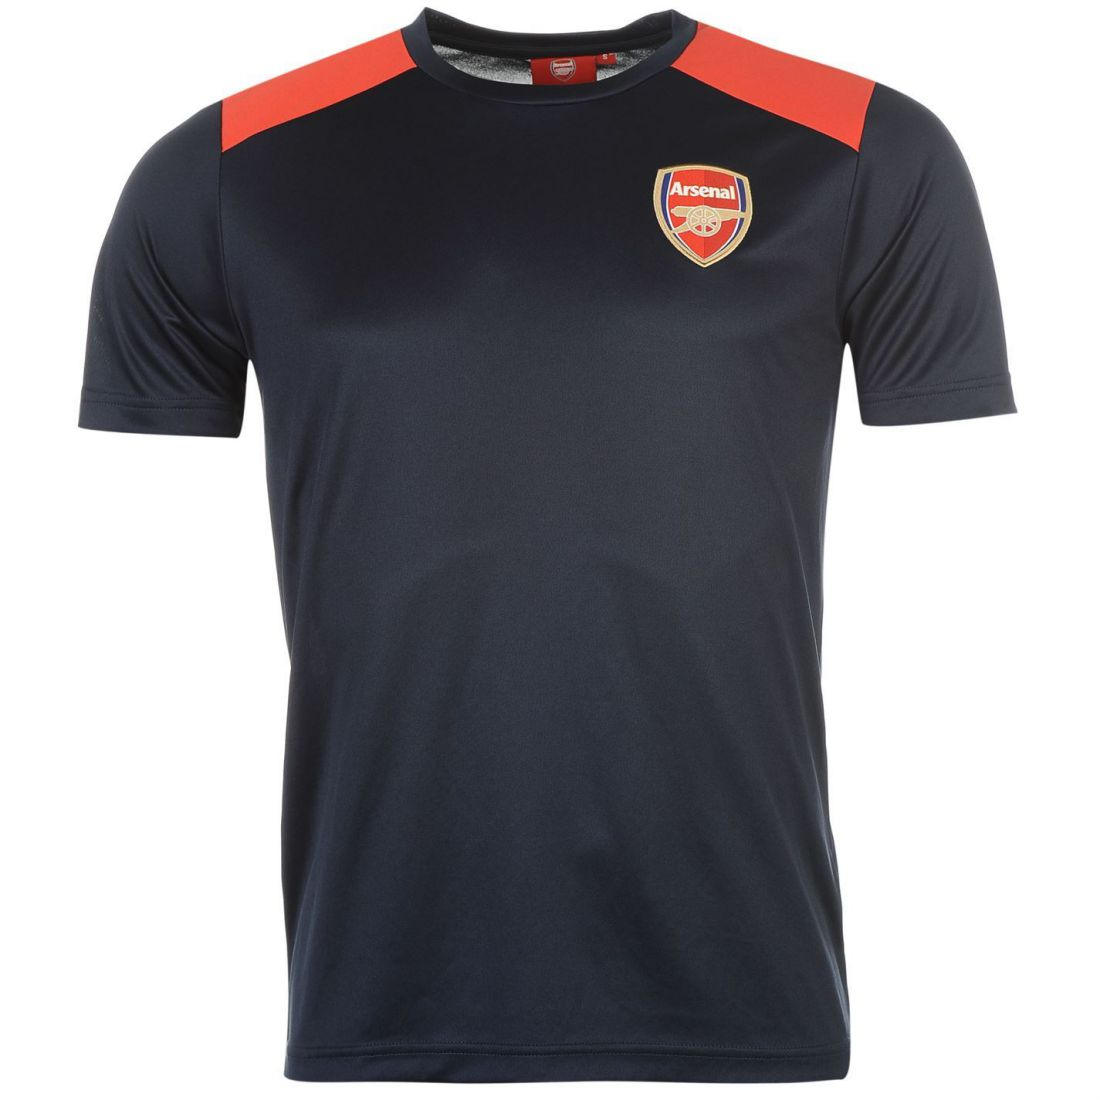 Puma Shirt Tee Clothing Arsenal Poly T Details Top Gents About Summer Mens W9D2IYHE